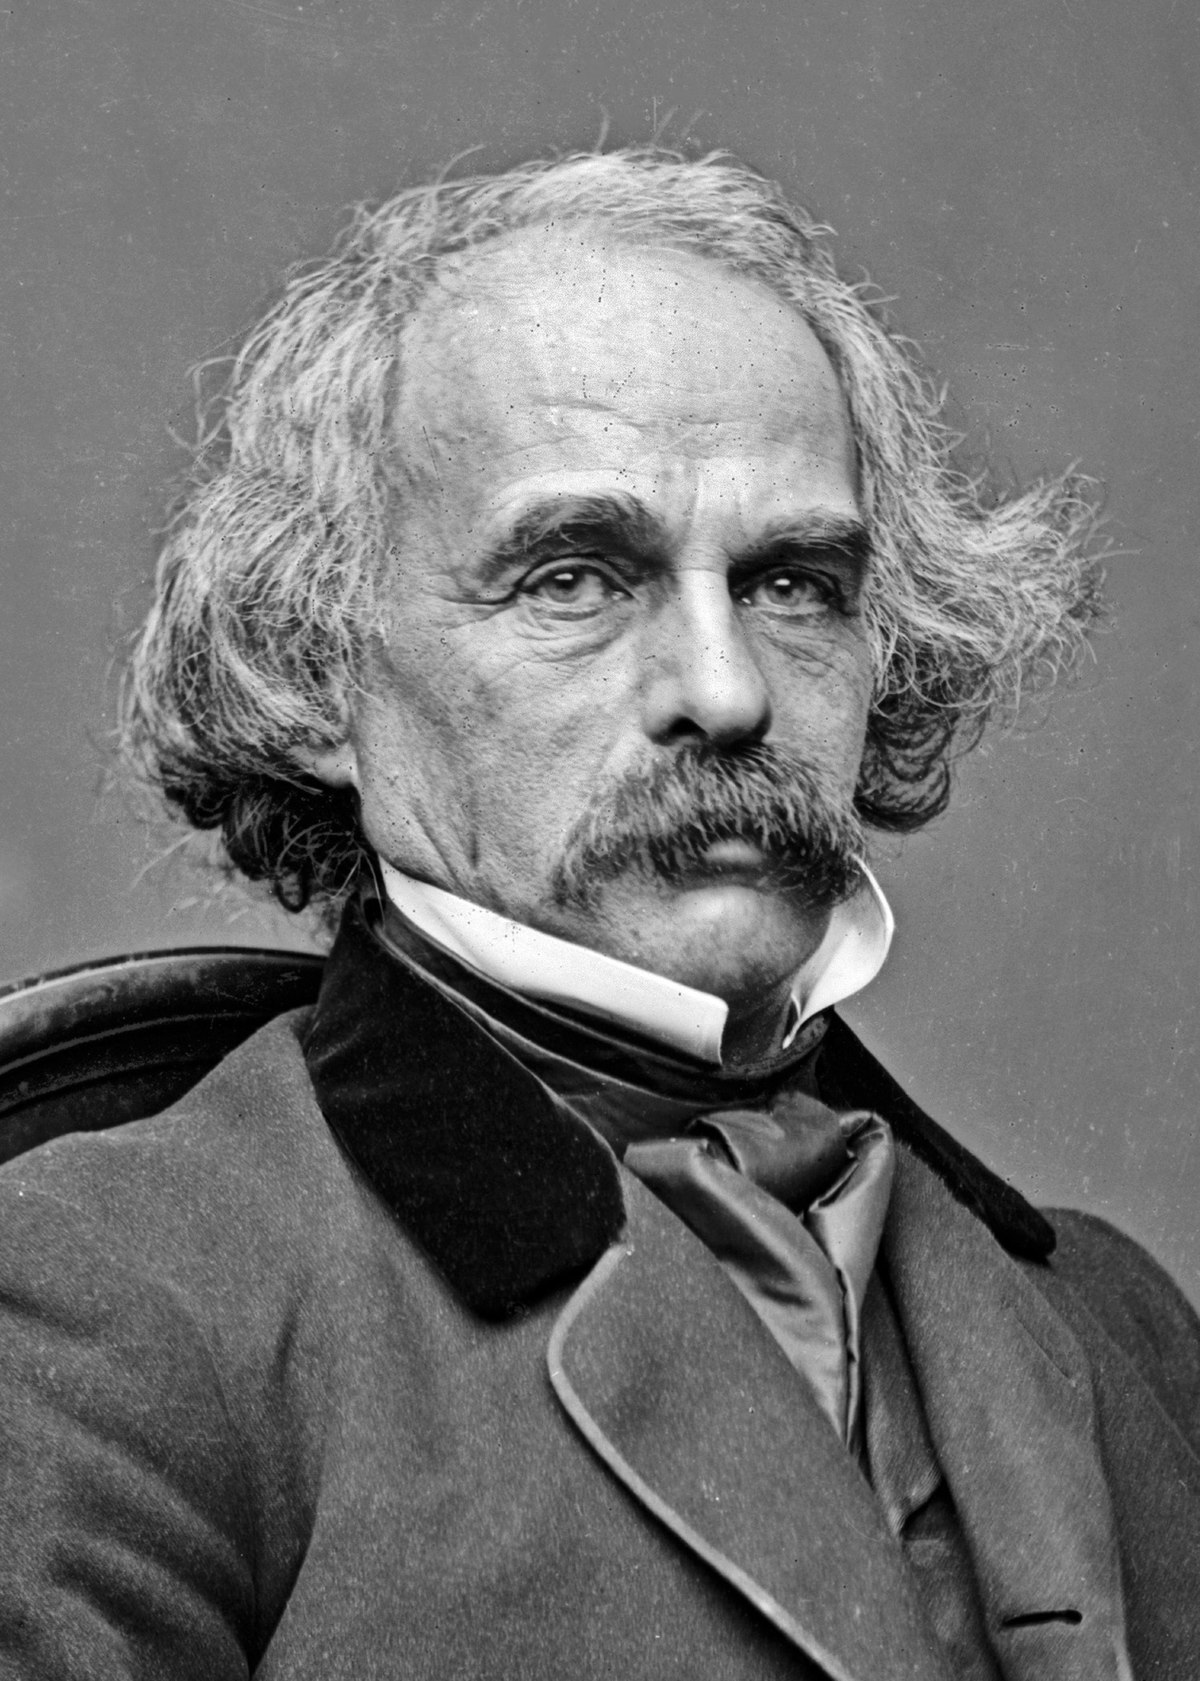 https://upload.wikimedia.org/wikipedia/commons/thumb/c/c4/Nathaniel_Hawthorne_by_Brady%2C_1860-64.jpg/1200px-Nathaniel_Hawthorne_by_Brady%2C_1860-64.jpg